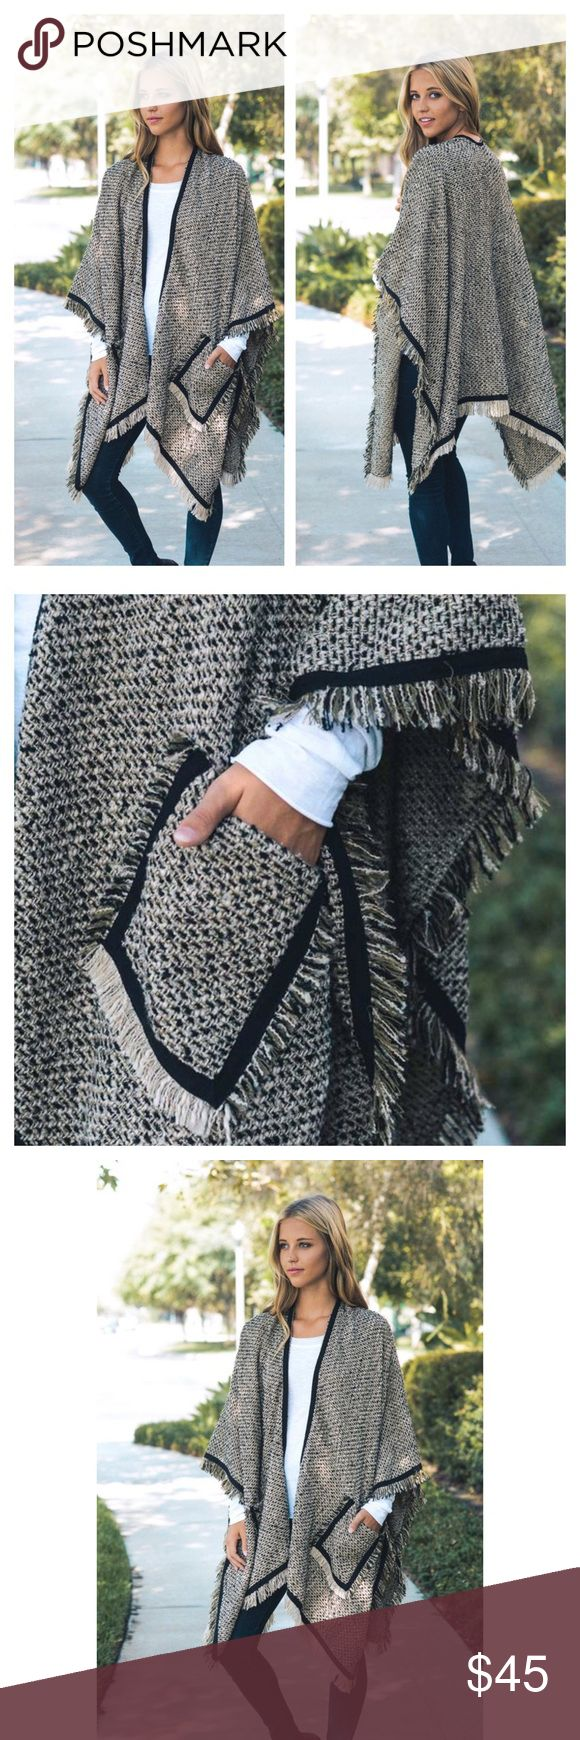 """Arriving Soon- Mocha Tweed Poncho With Pockets This listing is for a warm and cozy tweed poncho. Chunky poncho. Blanket scarf. 100% soft and smooth Acrylic. Dimensions: 67""""x50"""". Brand new. Accessories Scarves & Wraps"""